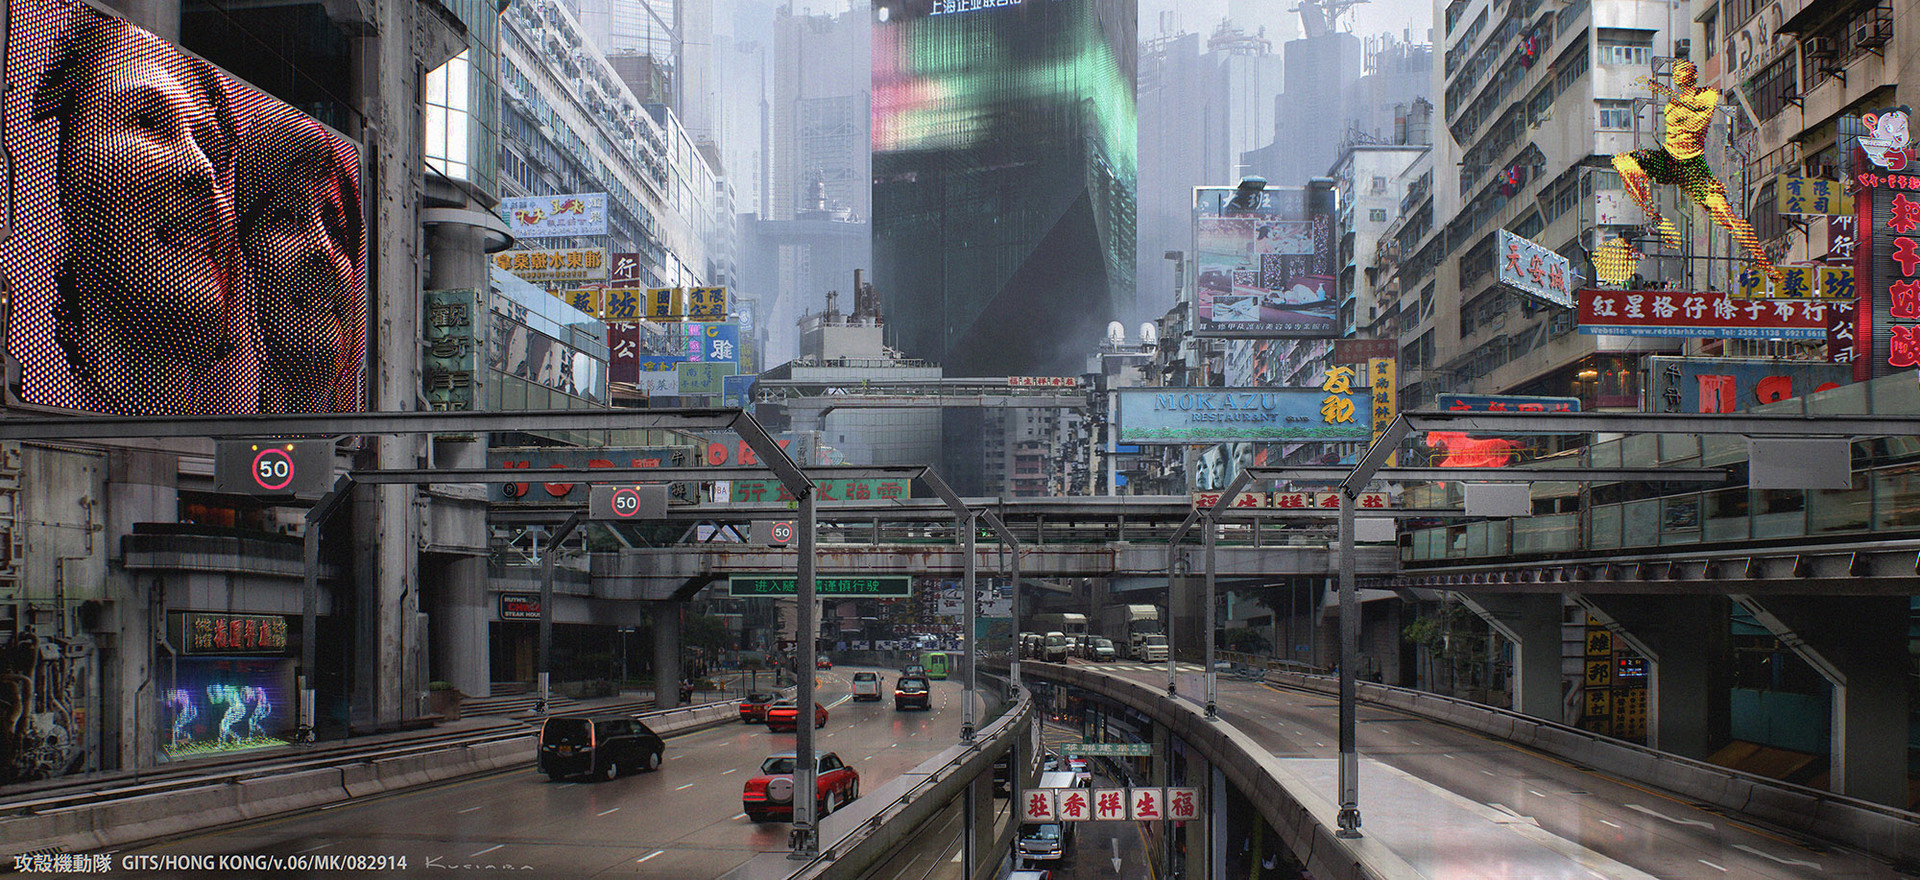 Artstation Ghost In The Shell Environments And People Maciej Kuciara